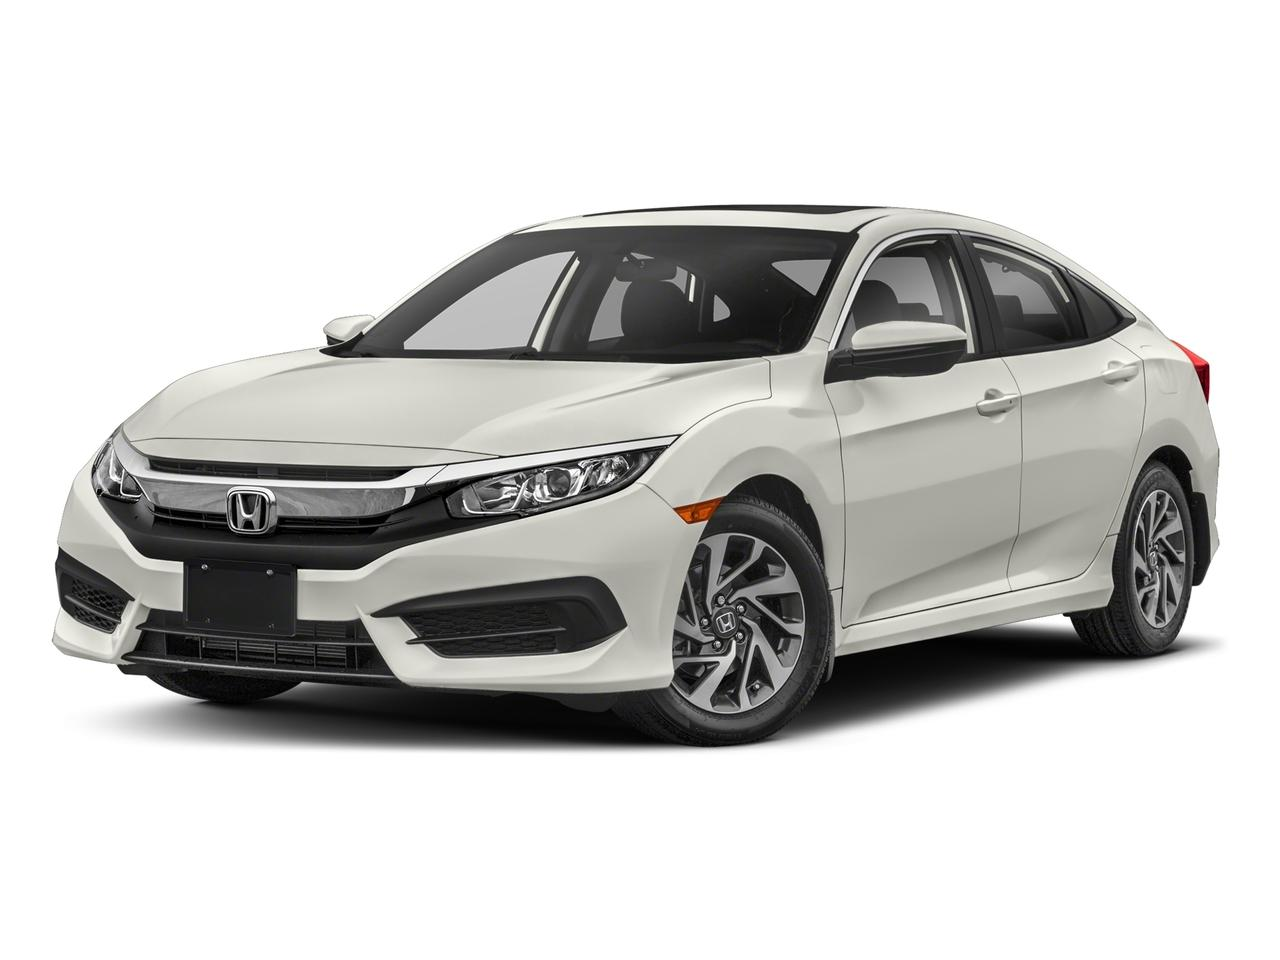 2018 Honda Civic Sedan Vehicle Photo in Oklahoma City , OK 73131